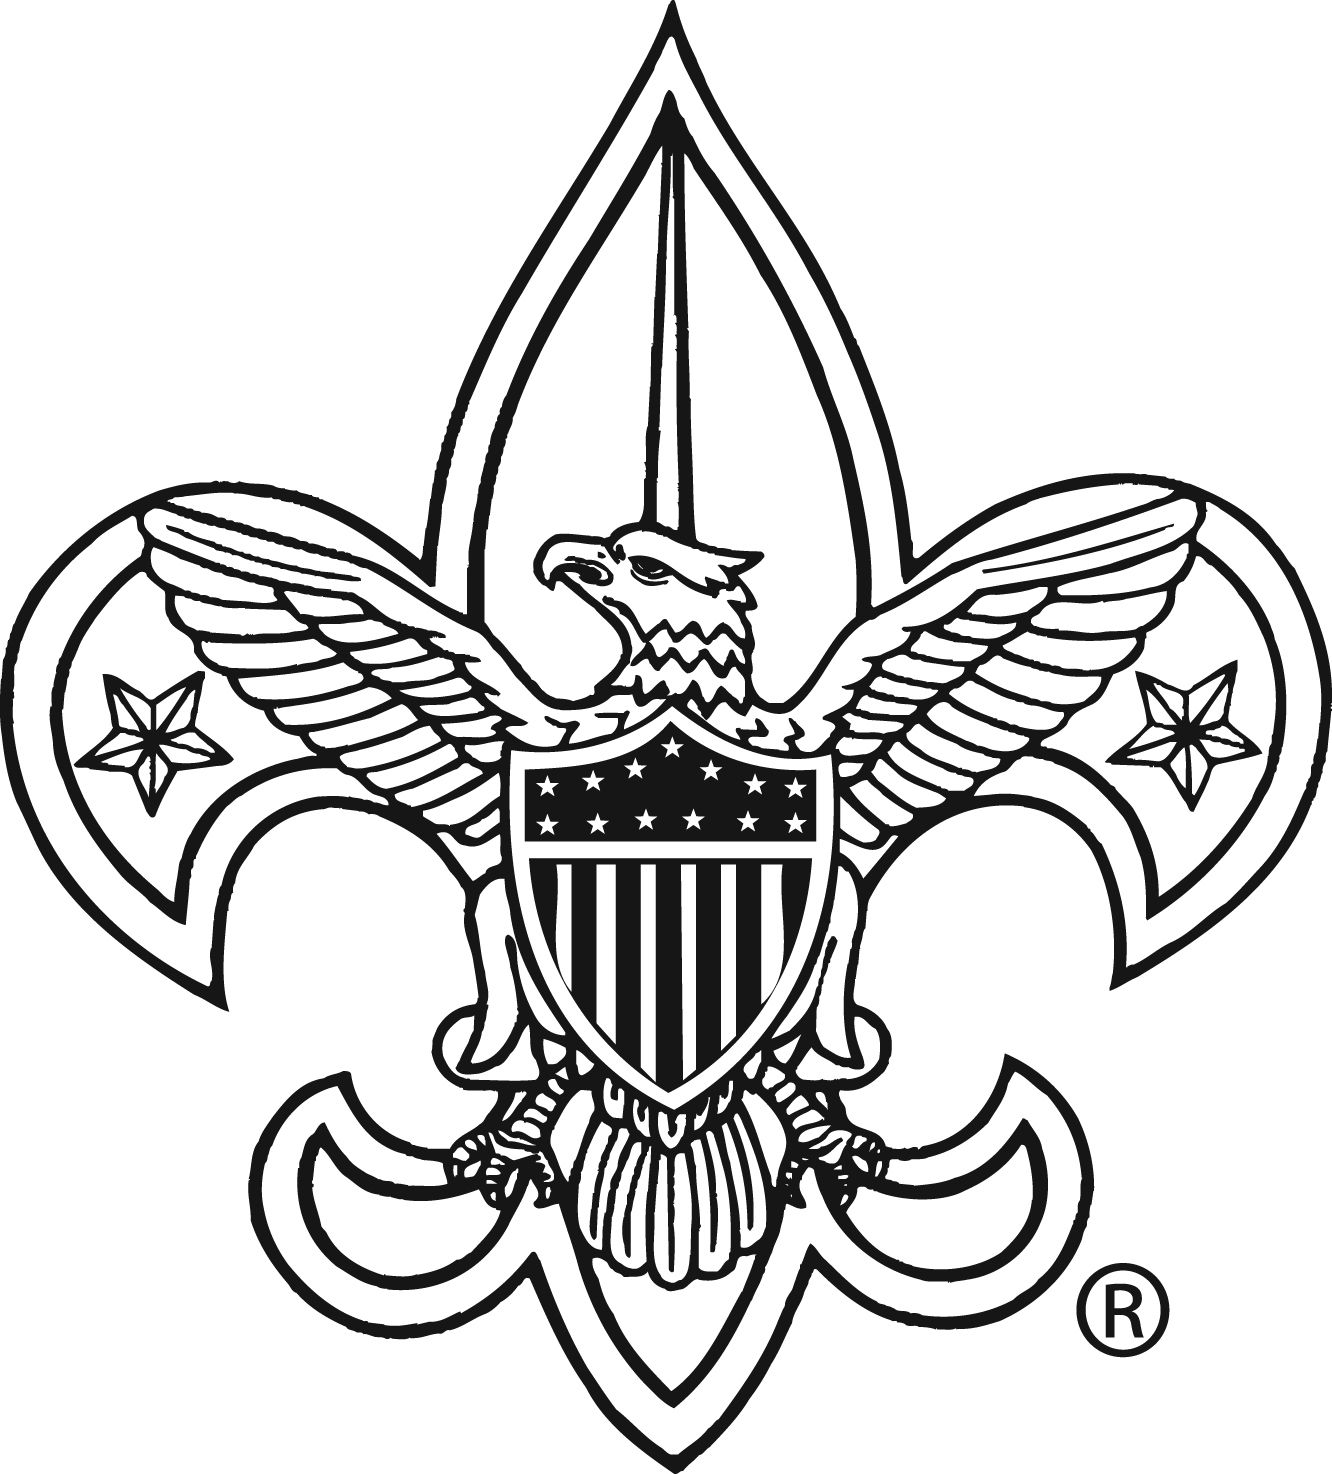 Eagle Scout Symbol Google Search Outdoors Pinterest Eagle